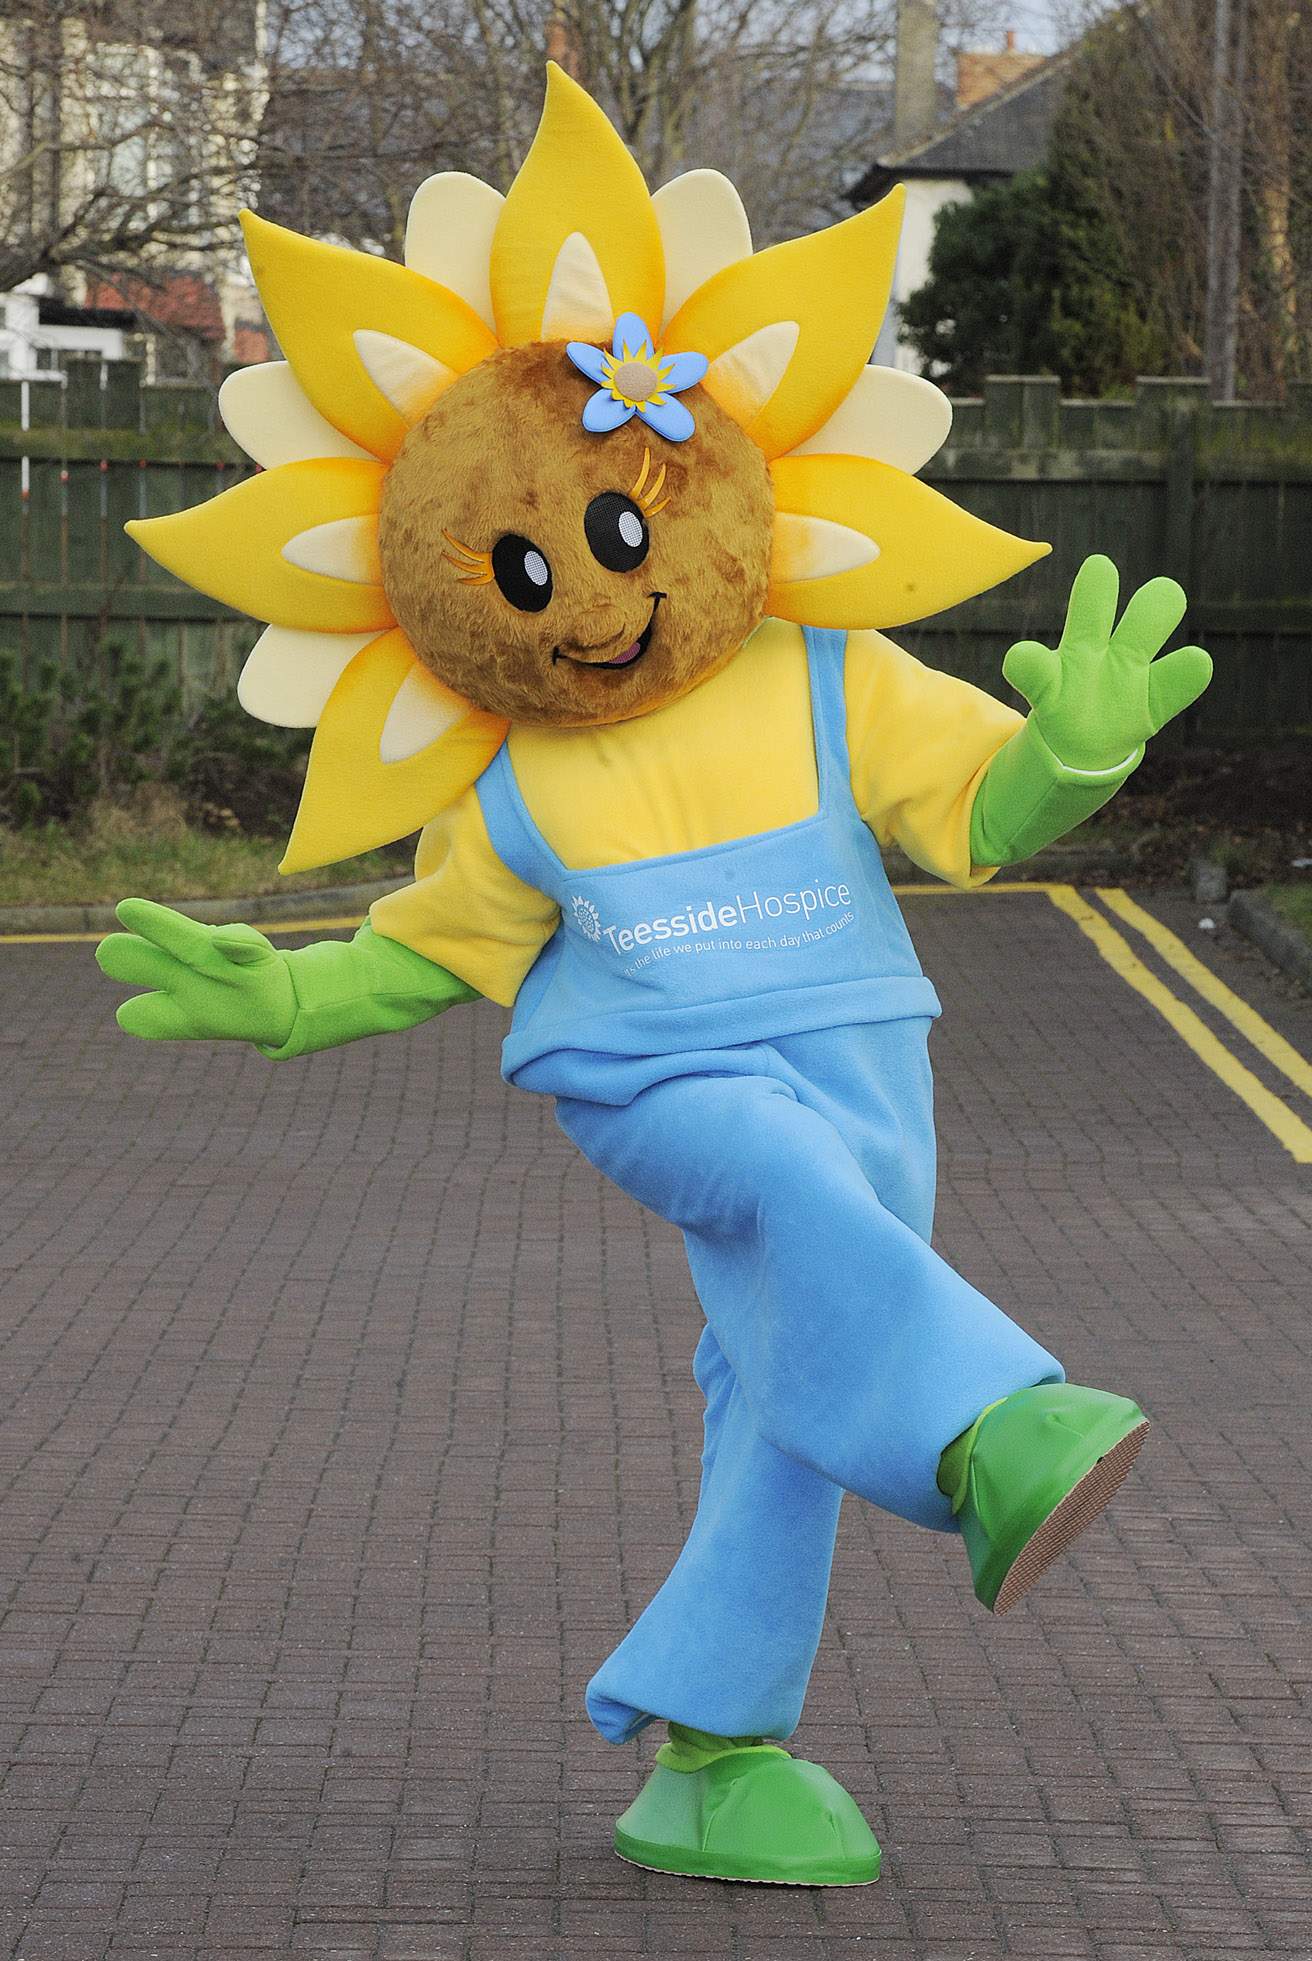 This sunflower mascot is from a hospice...so I have no idea what to make of that :(